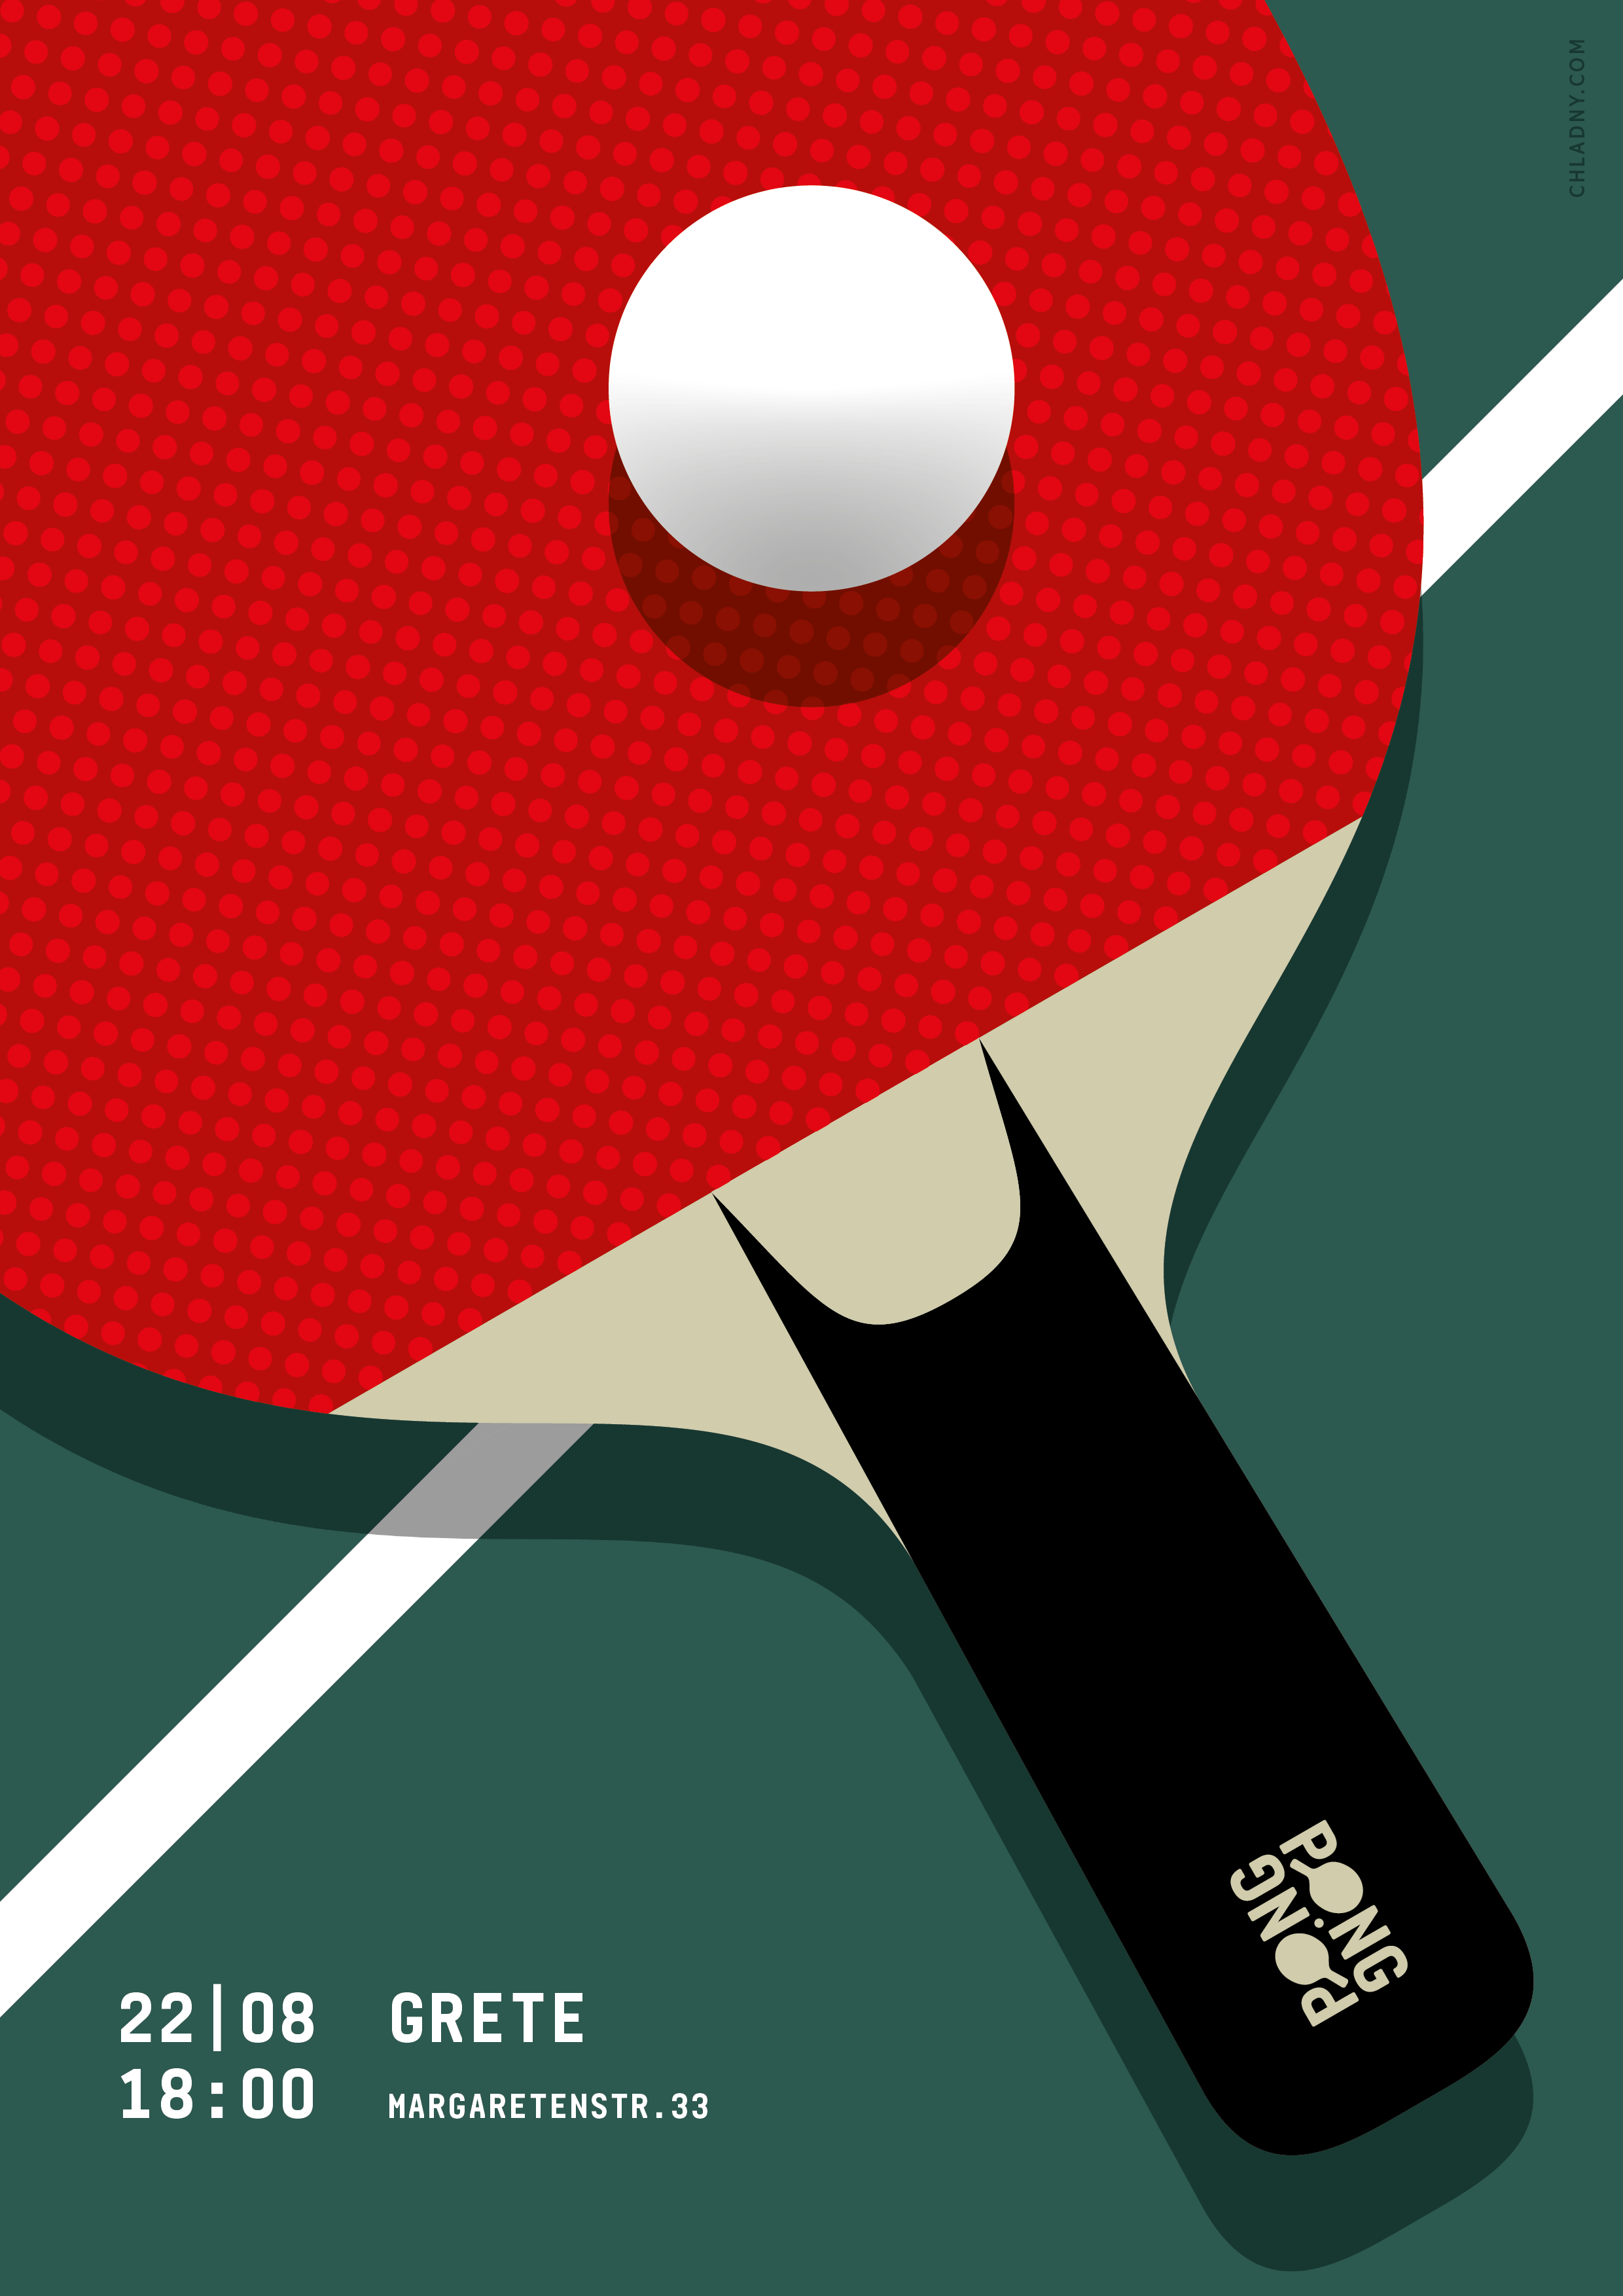 Ping Pong Poster Graphic Design Illustration C 2016 Christian Chladny Tennis Posters Graphic Design Posters Poster Design